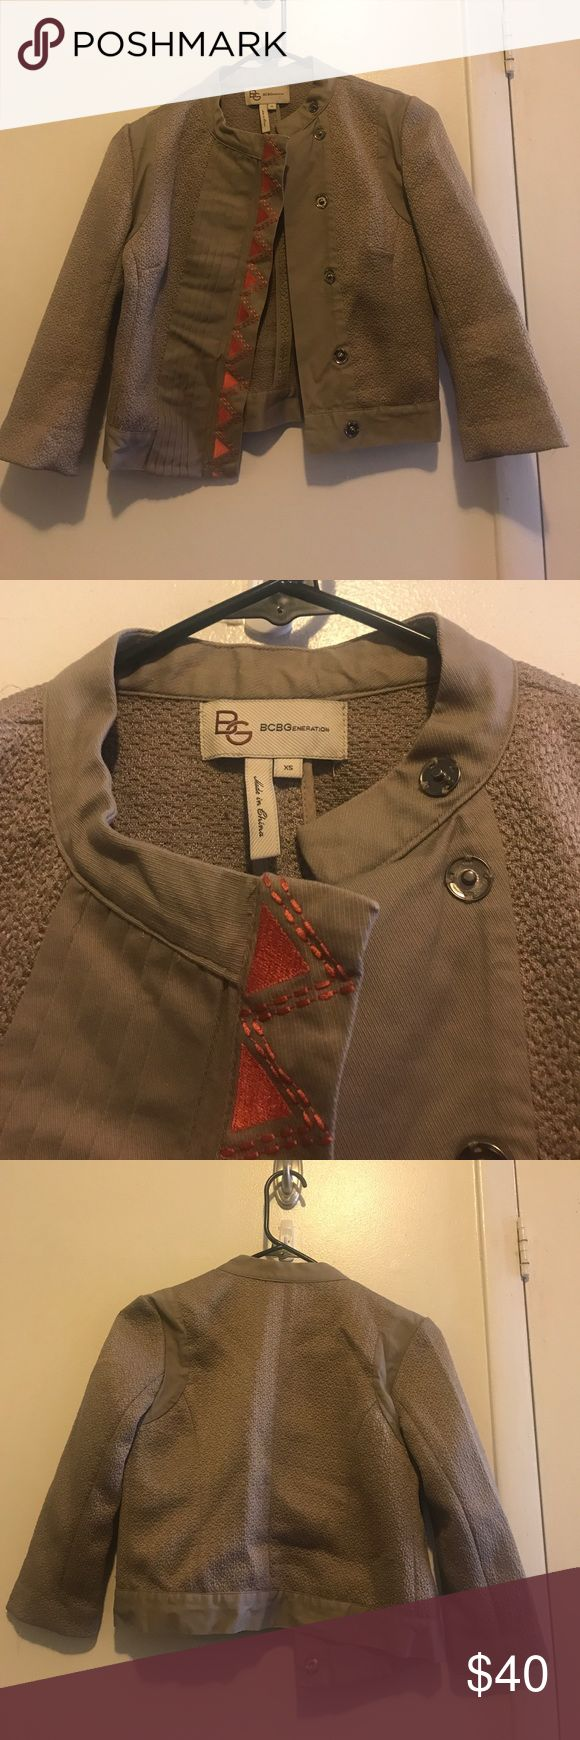 BCBGeneration Jacket I'm selling a pre-owned BCBGeneration Jacket in Taupe. It's a size XS. BCBGeneration Jackets & Coats